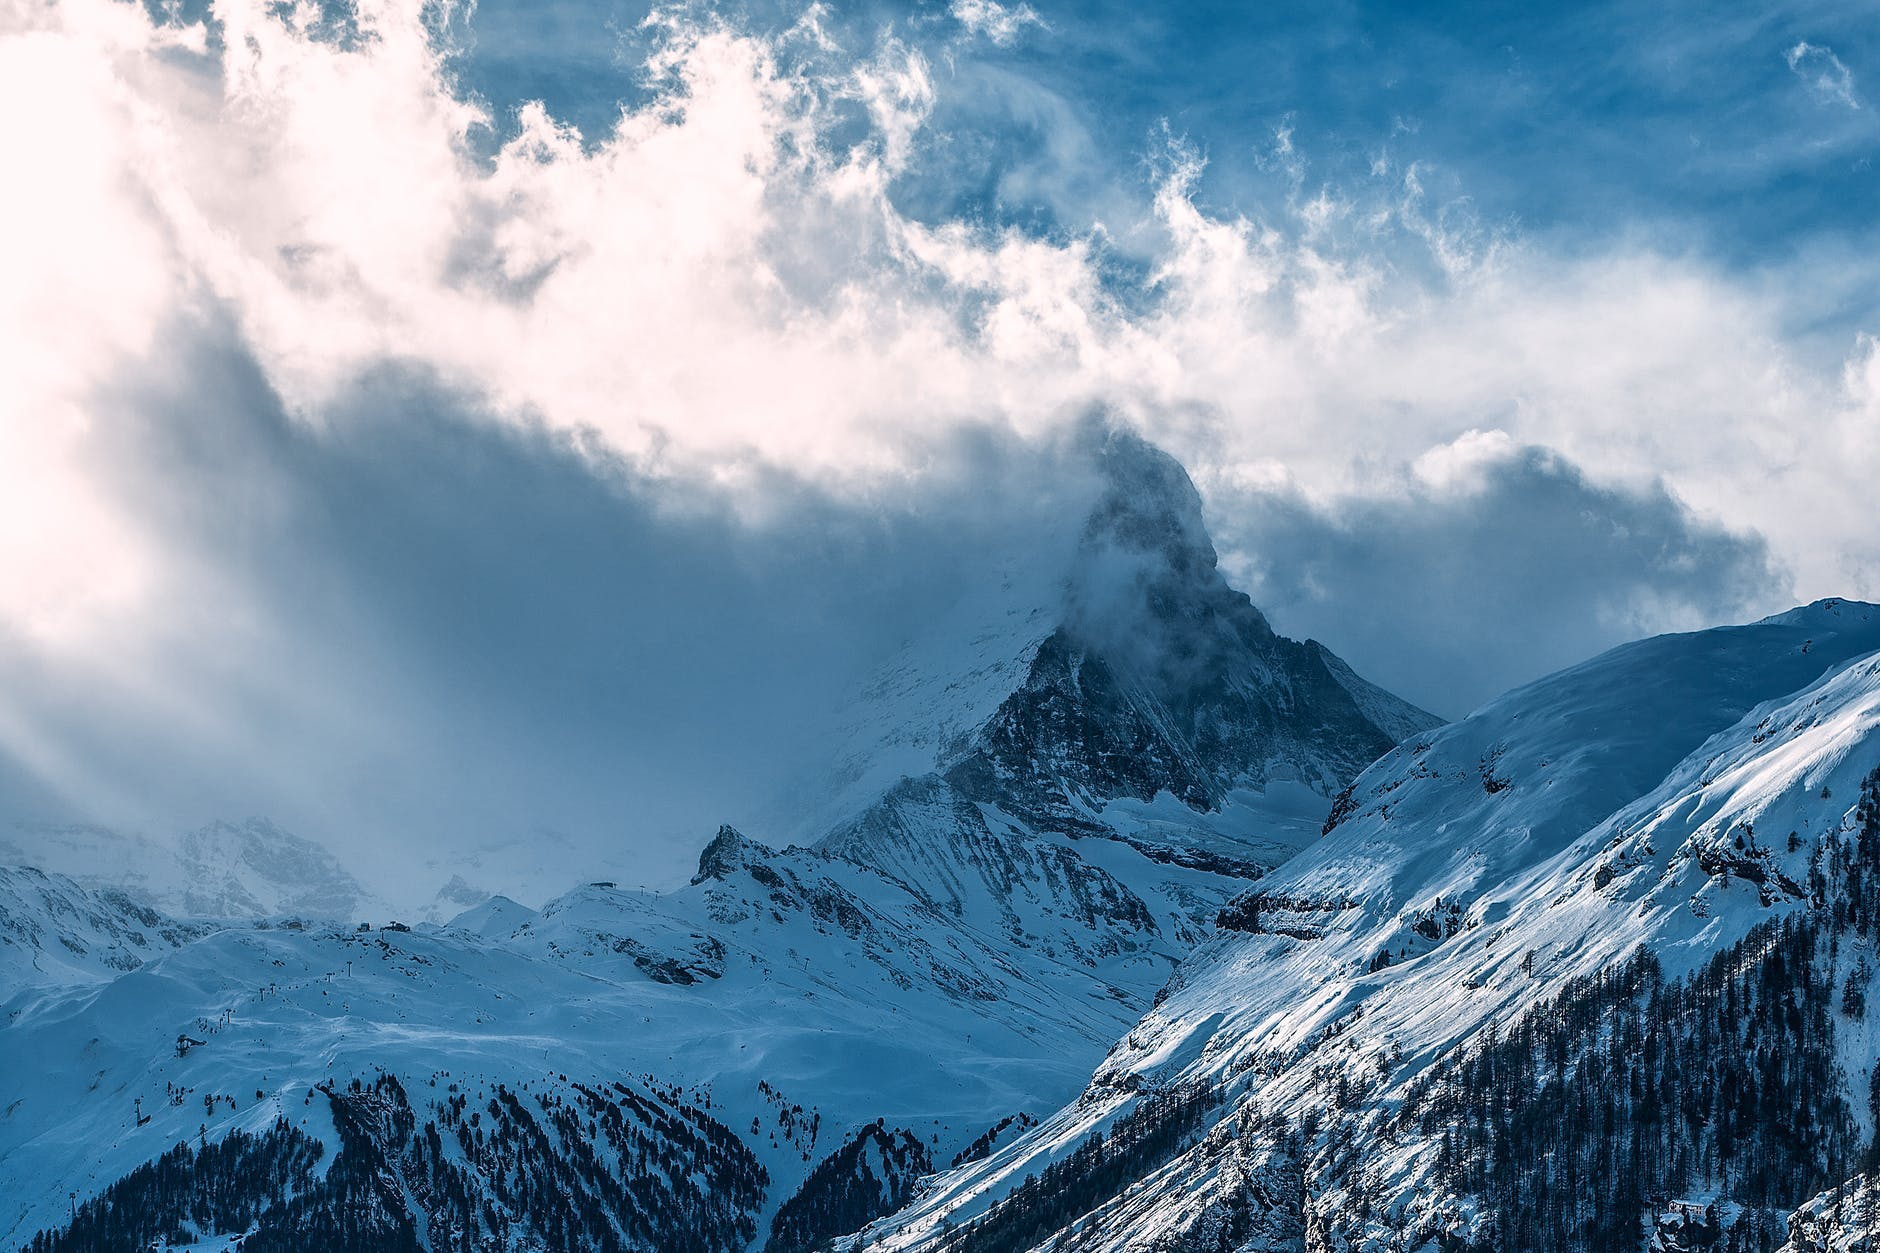 snowy mountain peaks under cloudy sky in sunlight